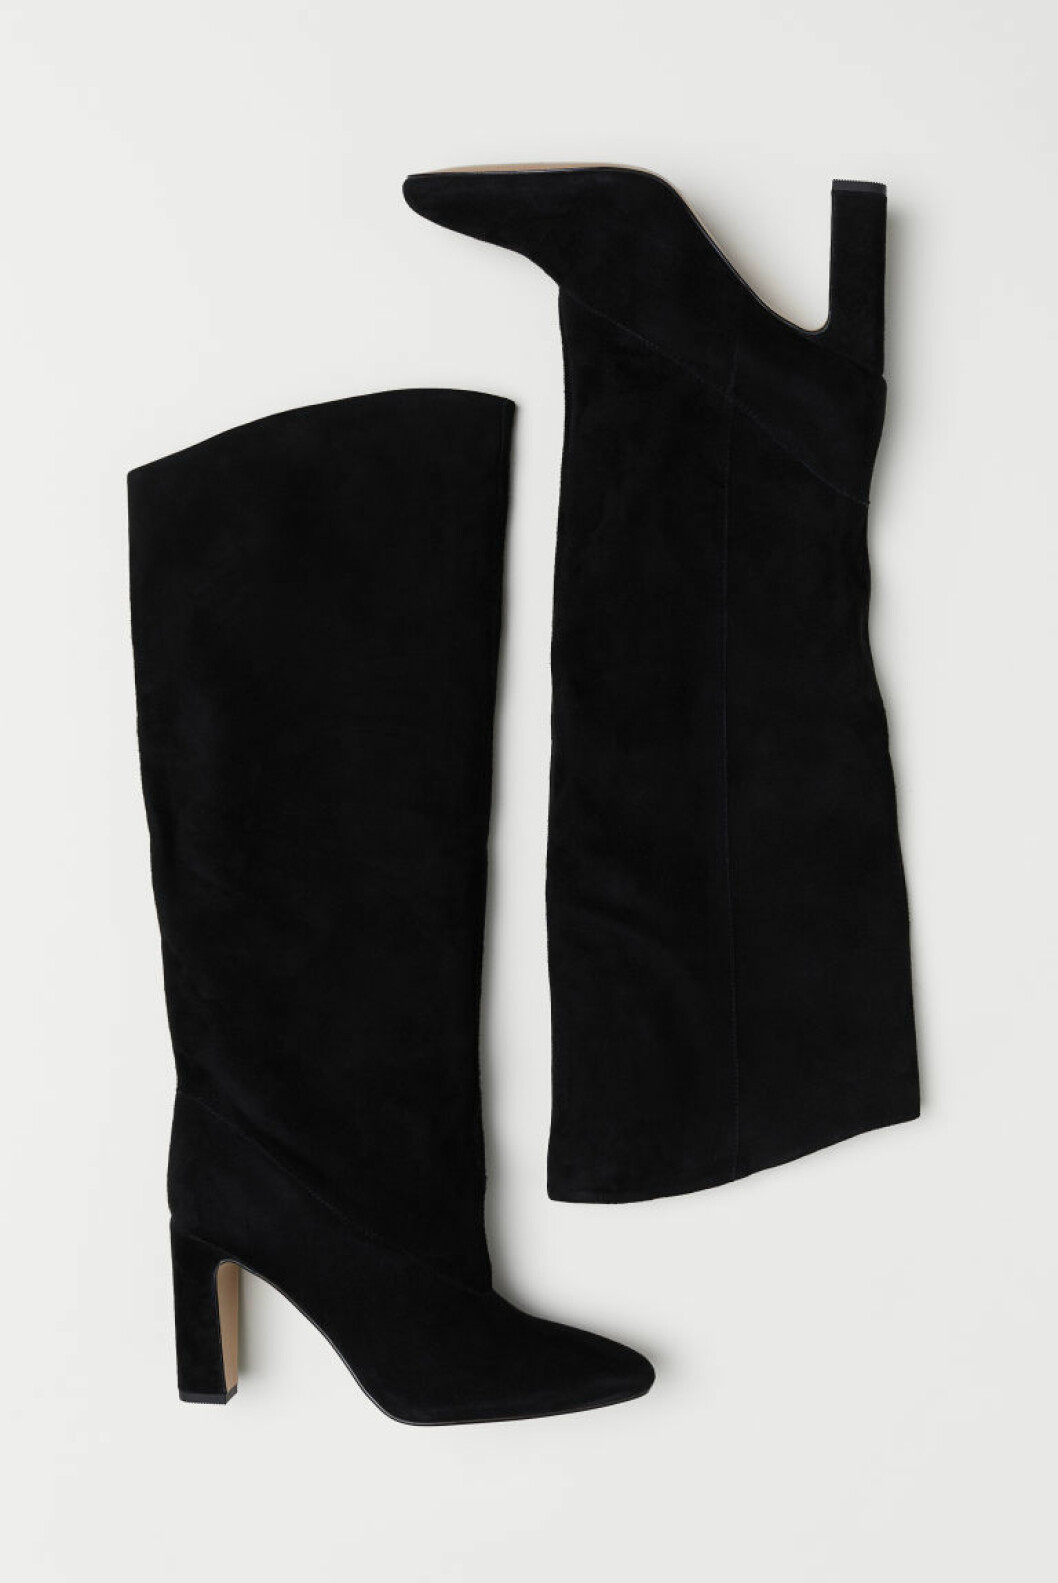 <strong>Boots i semsket skinn fra H&M |800,-| https:</strong>//www2.hm.com/no_no/productpage.0521978001.html